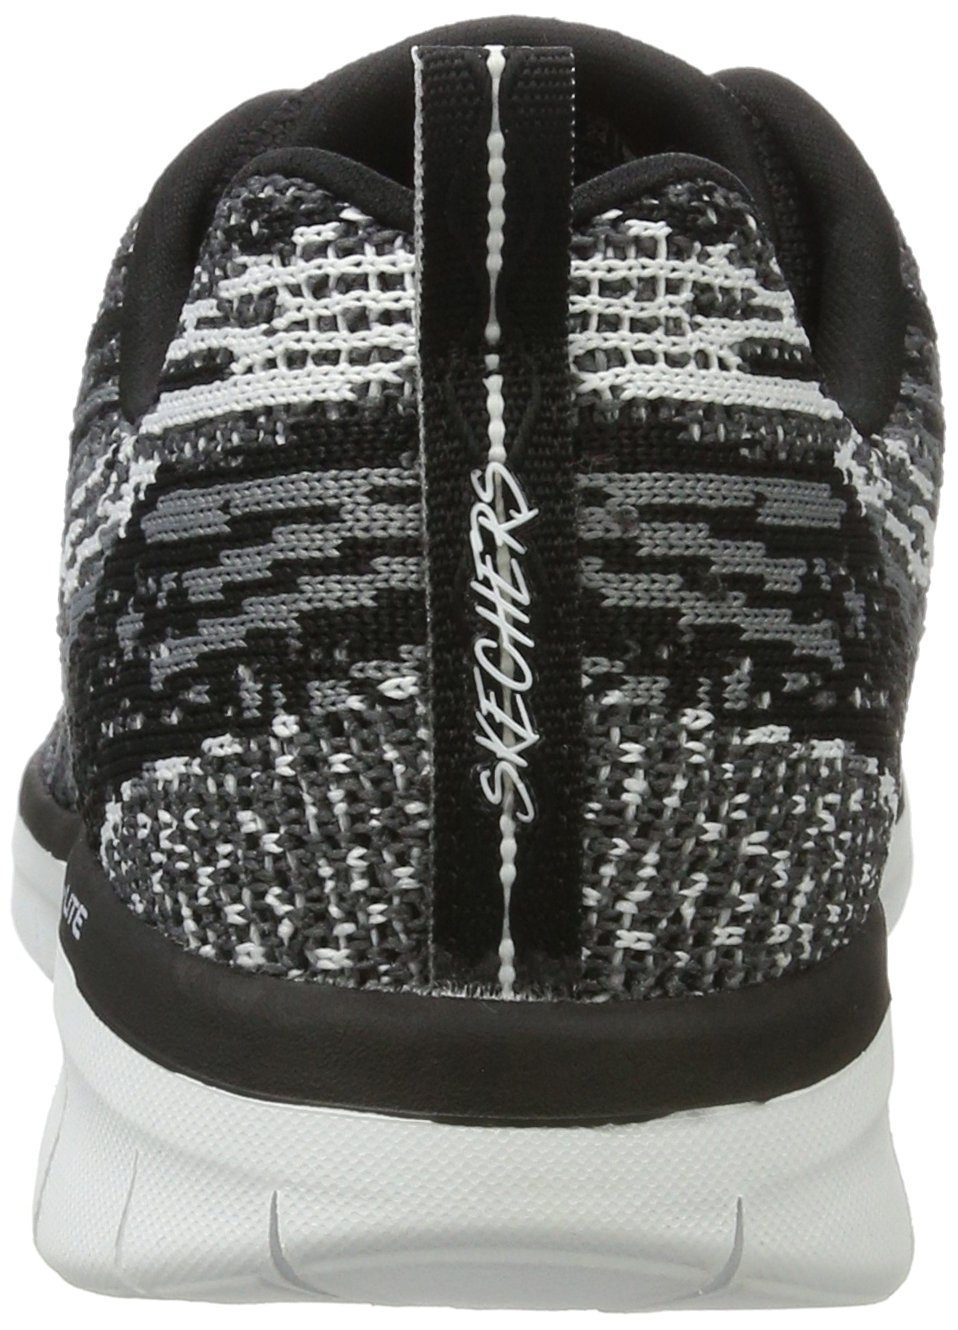 Skechers Sport Synergy 2.0 High Spirits Women's Sneaker B01MSAIZF7 7 M US|Black-grey